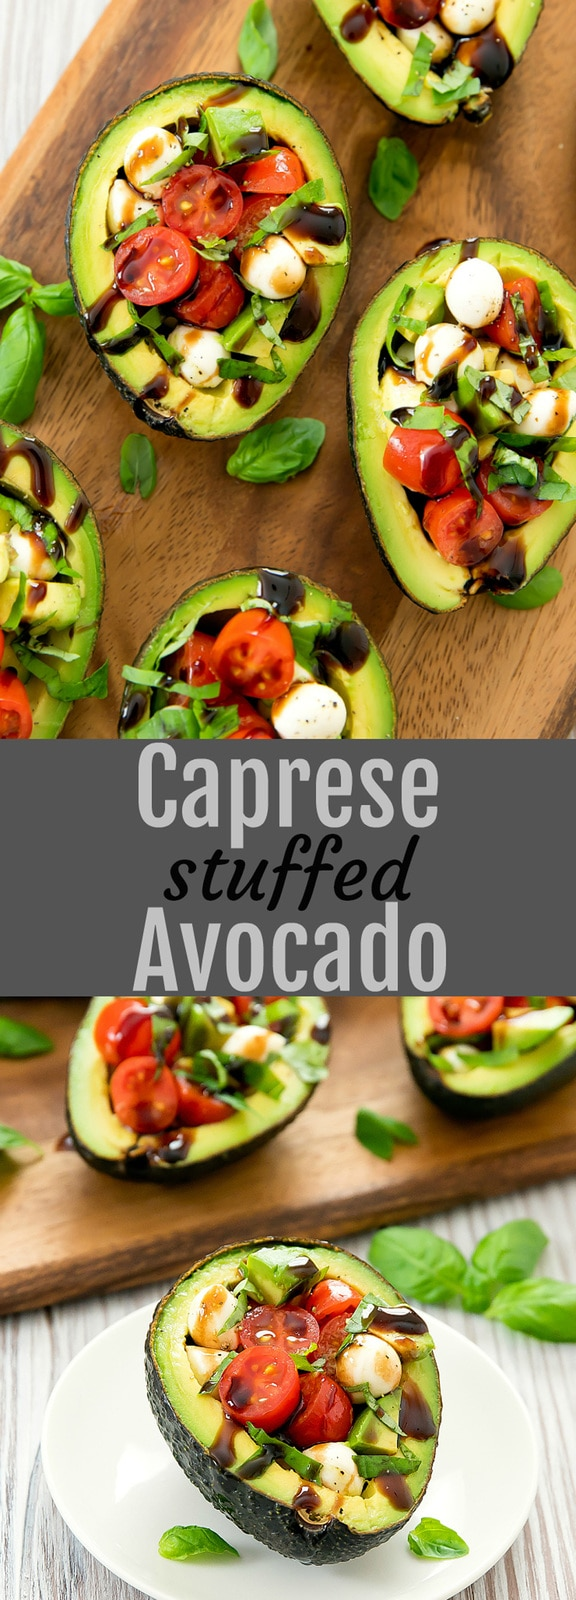 Caprese Stuffed Avocados. A creamy twist on caprese salad, stuffing them inside avocados. An easy light meal or a fun side dish for a party.